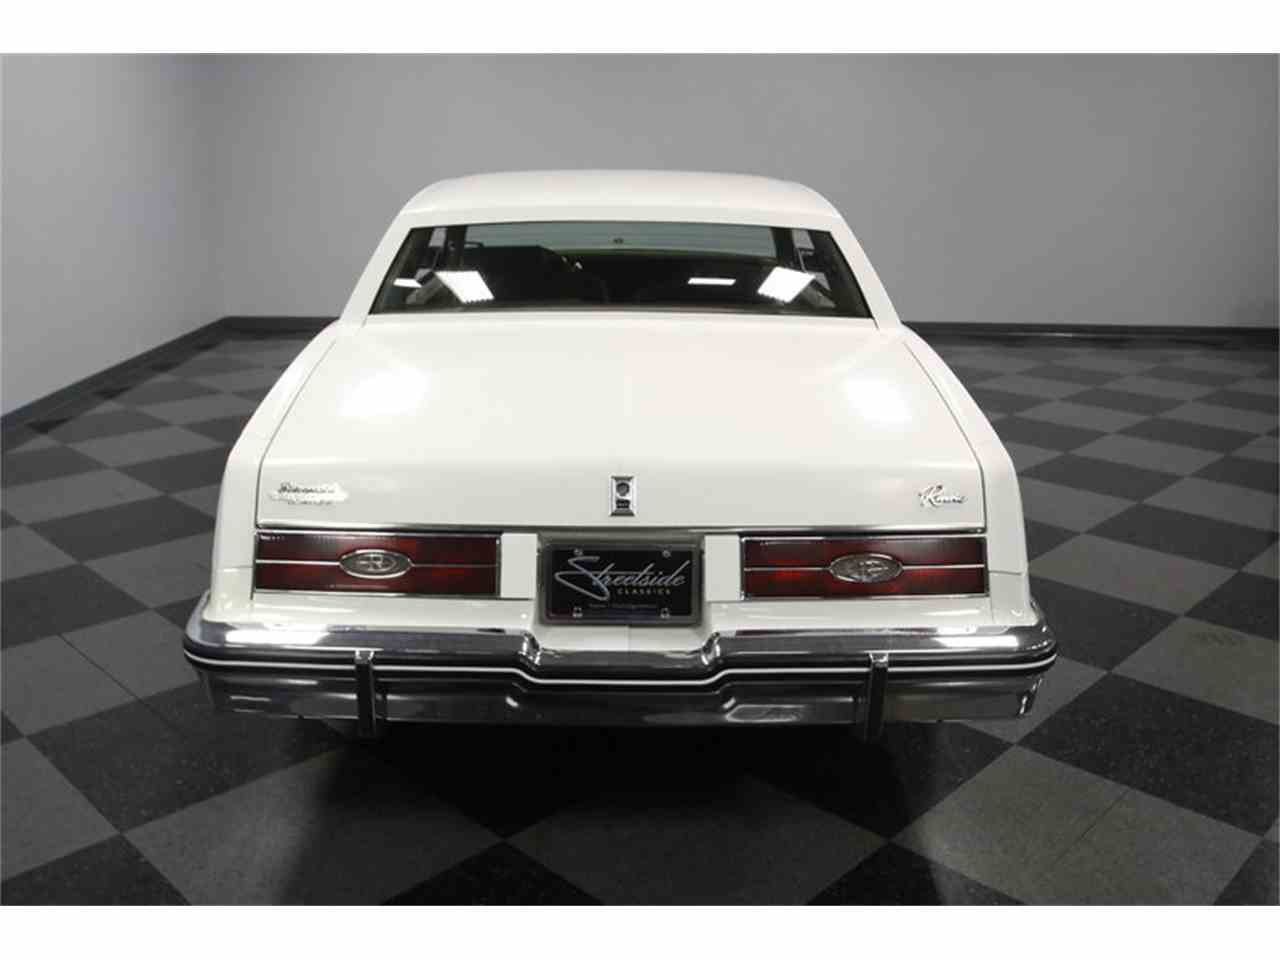 Large Picture of '85 Riviera located in North Carolina - $8,995.00 Offered by Streetside Classics - Charlotte - MEQO